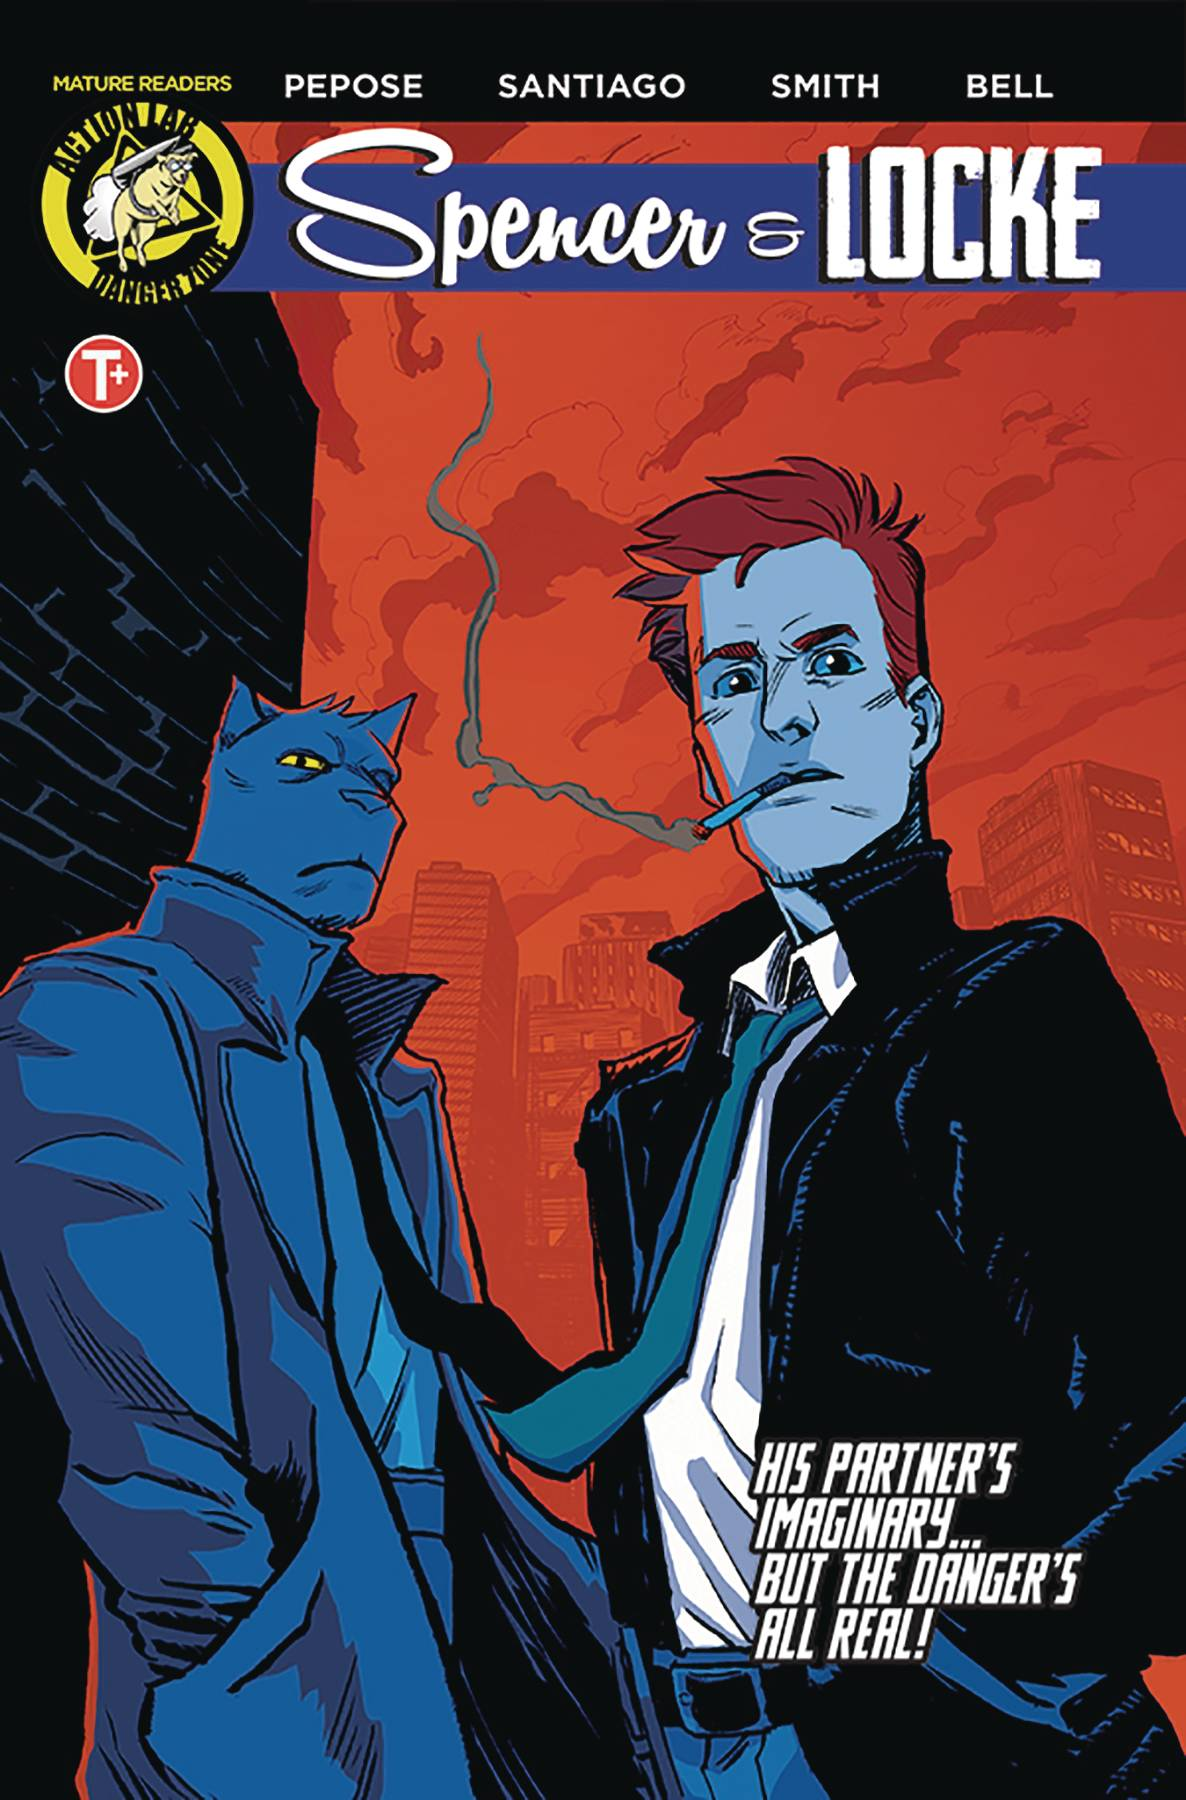 Meet the Author! Spencer and Locke Vol. 1 book discussion